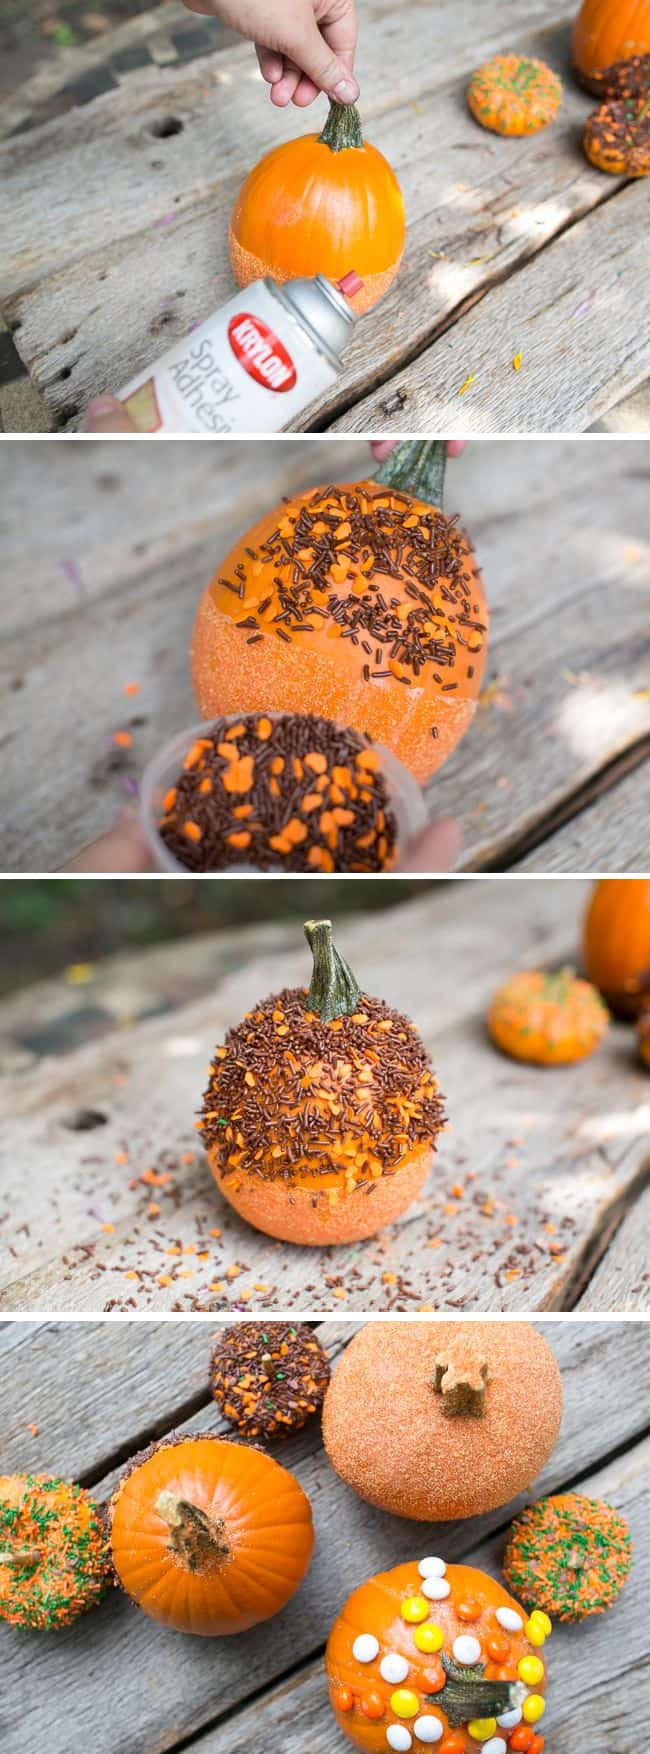 DIY Sprinkle Dipped Pumpkins